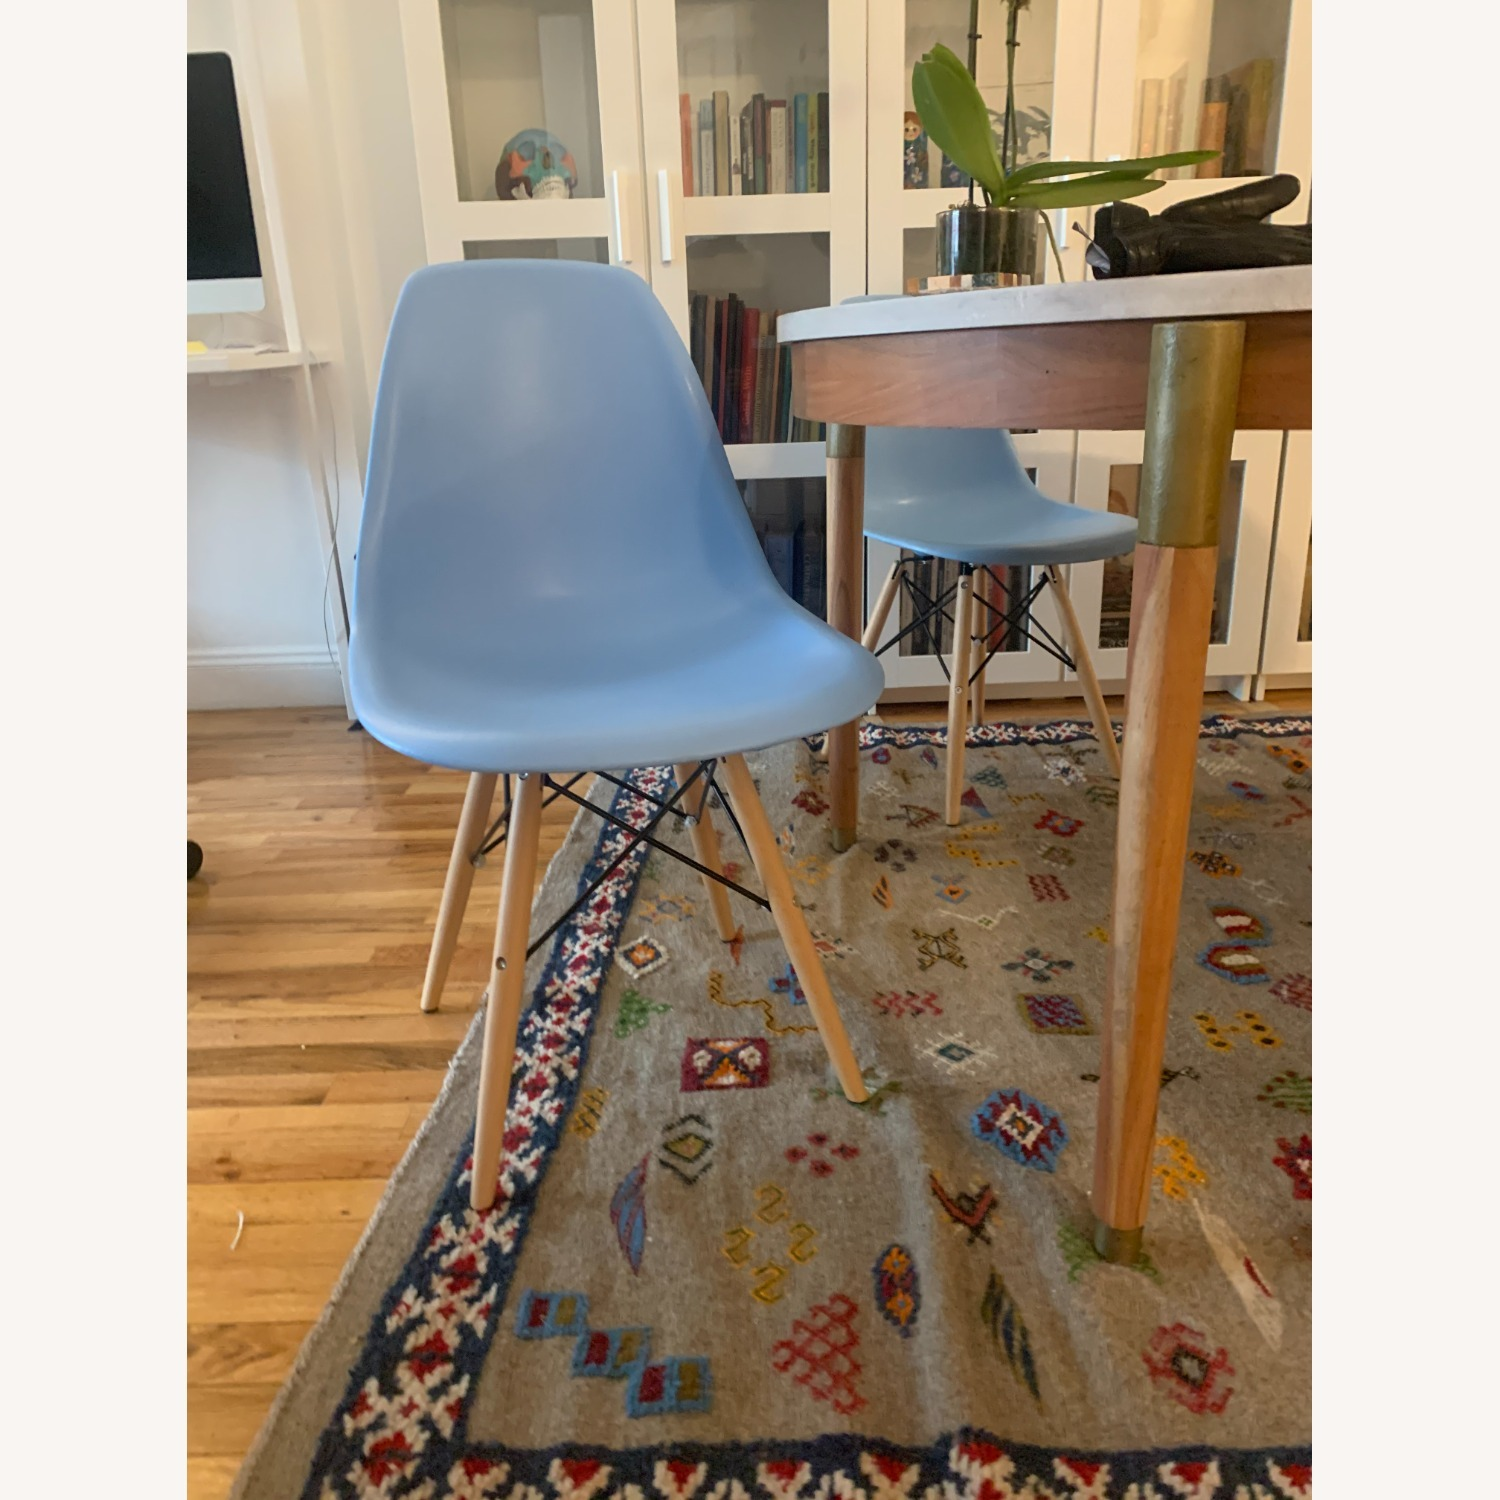 Modway Pyramid Mid-Century Dining Chairs - image-1